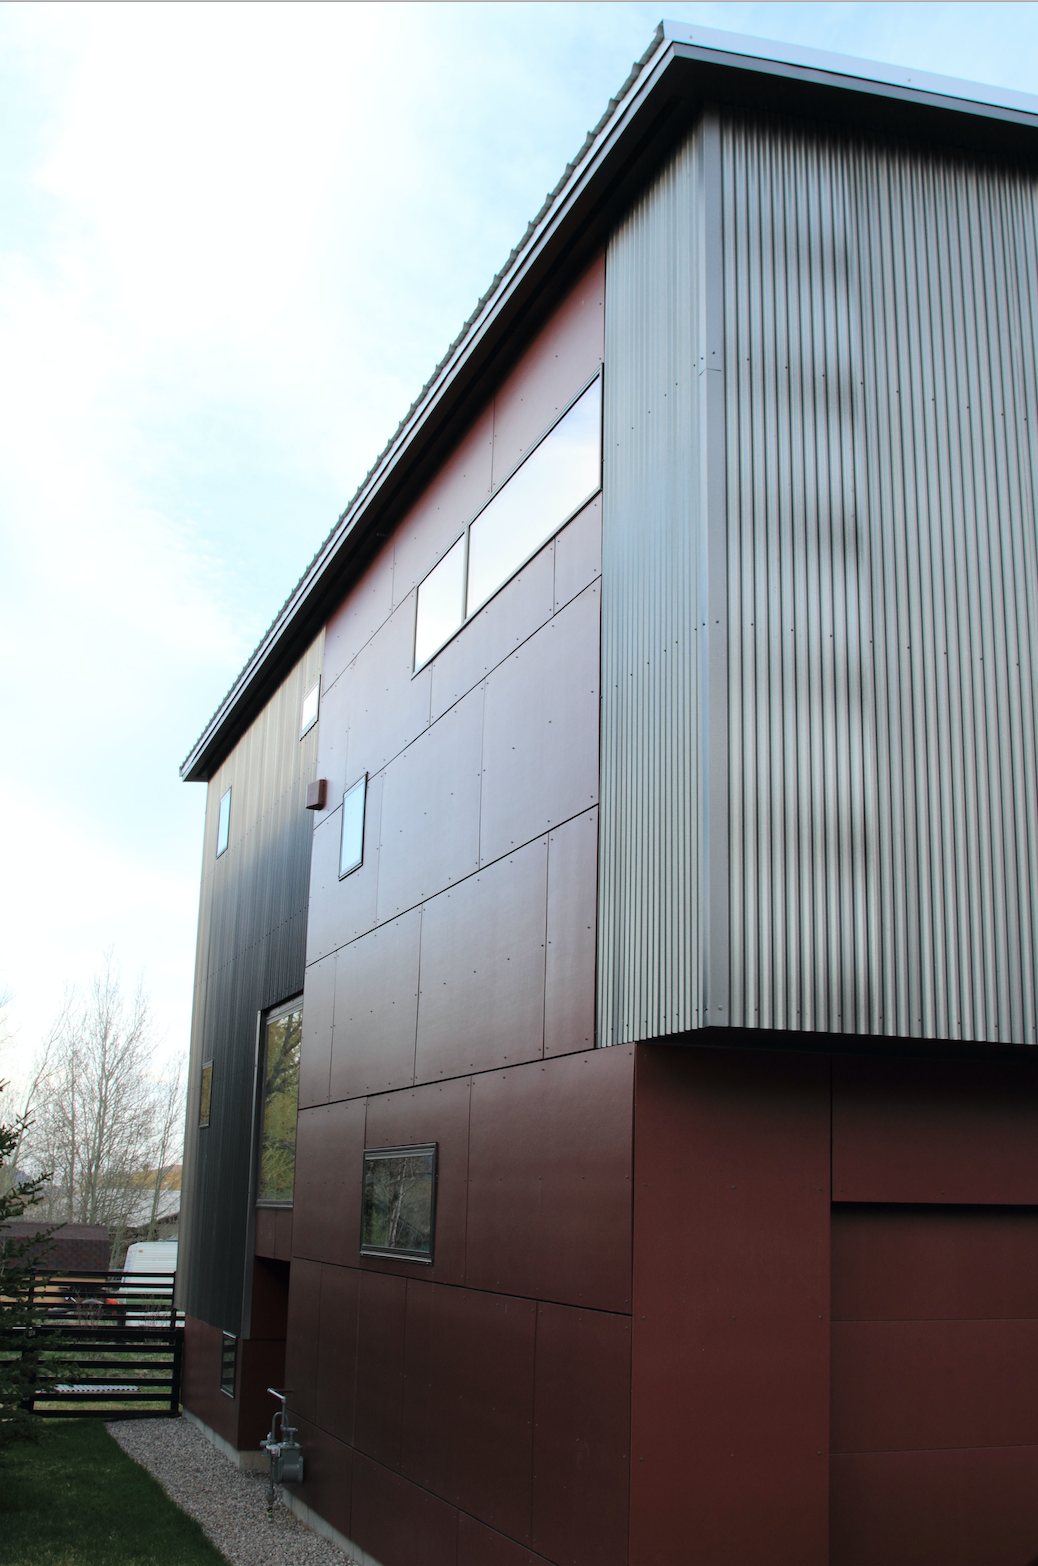 Modern Steel Siding Modern Architectural Design Commercial Architecture Teton Steel Inc Idaho Steel Roofing Steel Siding Metal Roof